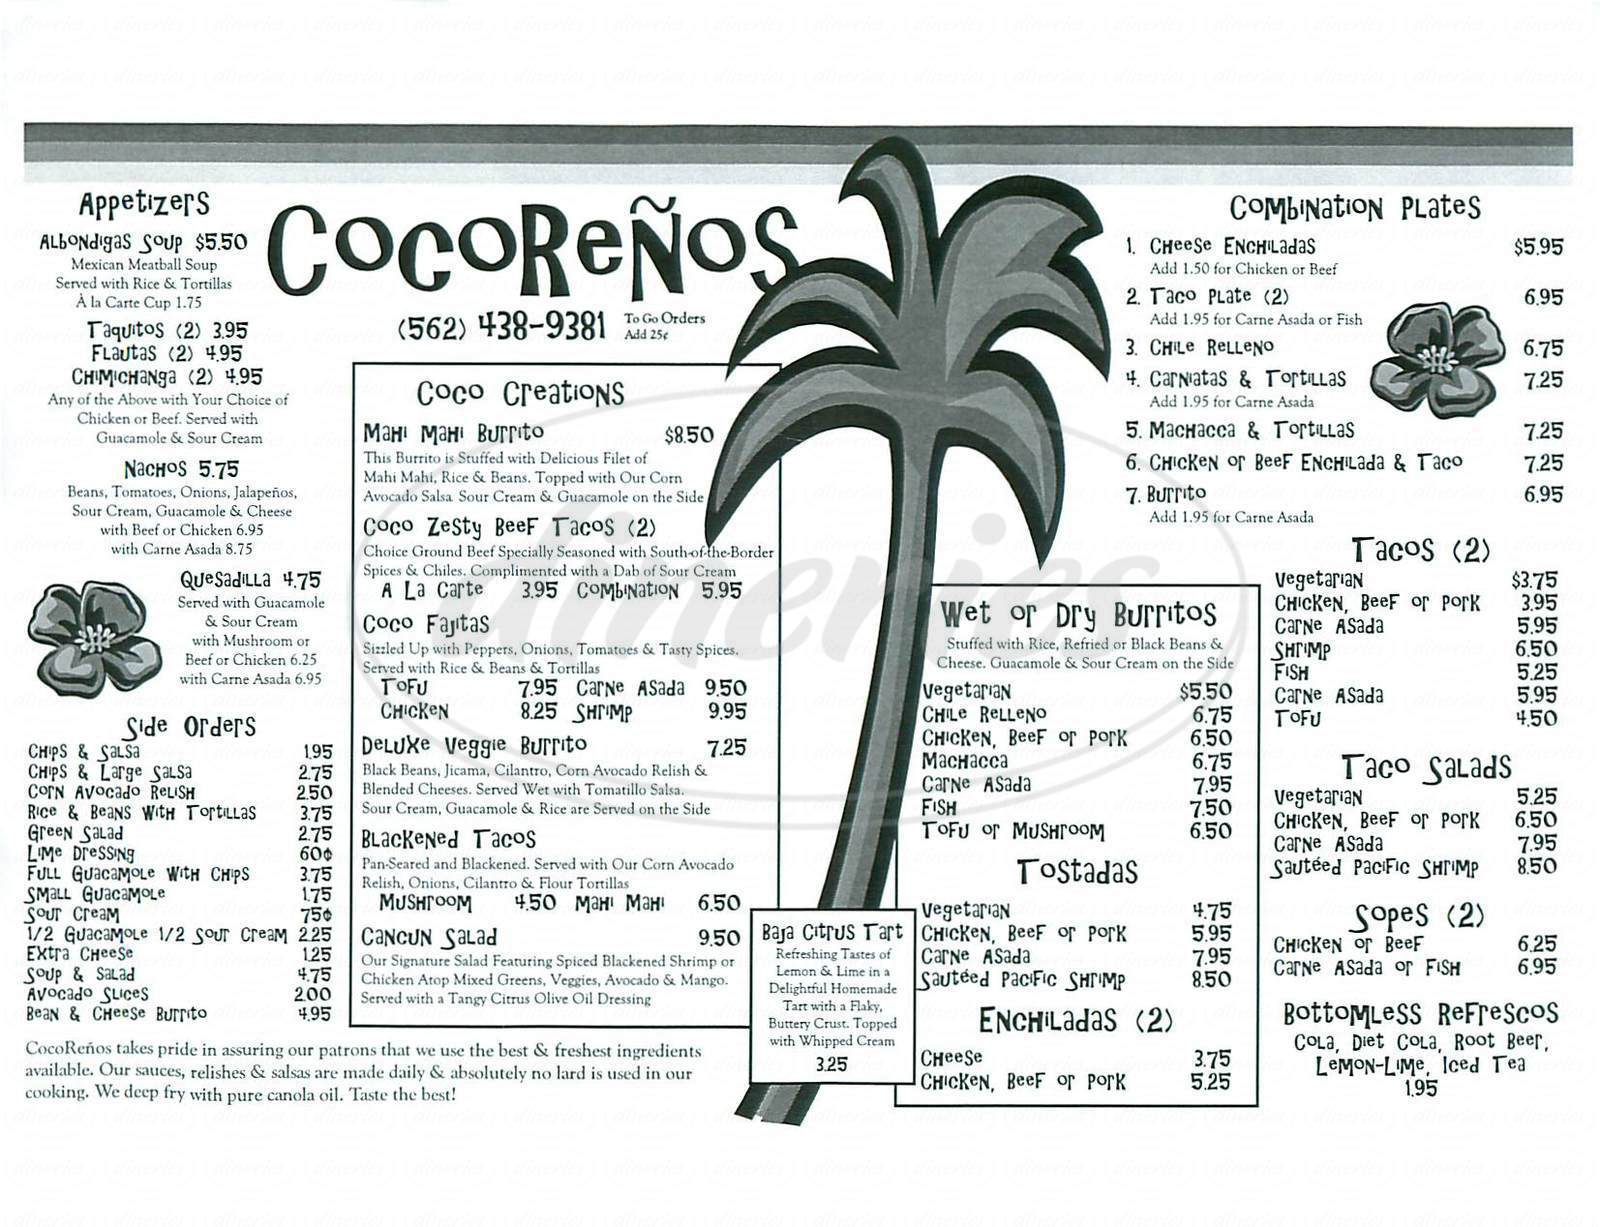 menu for Cocorenos